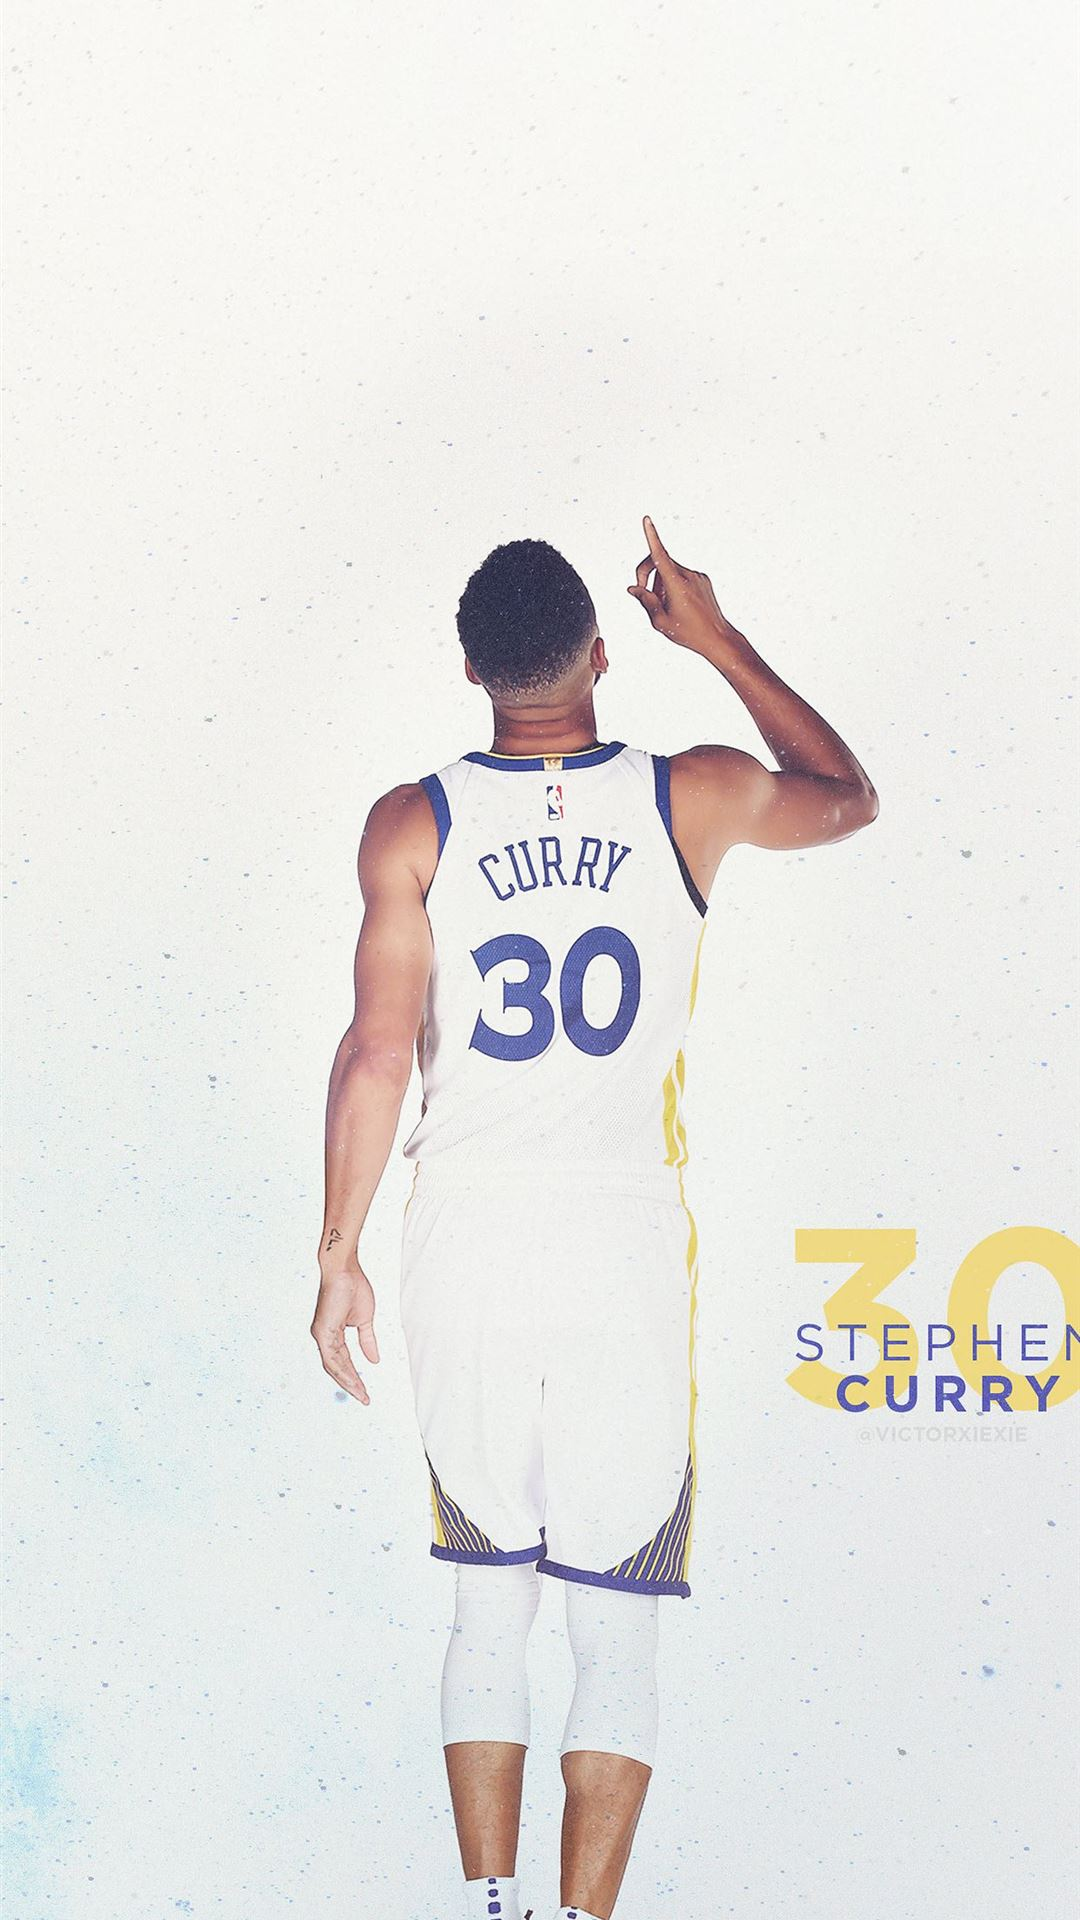 Stephen Curry Wallpaper Steph Curry Wallpapers Nba Stephen Curry All Star 2019 24643 Hd Wallpaper Backgrounds Download